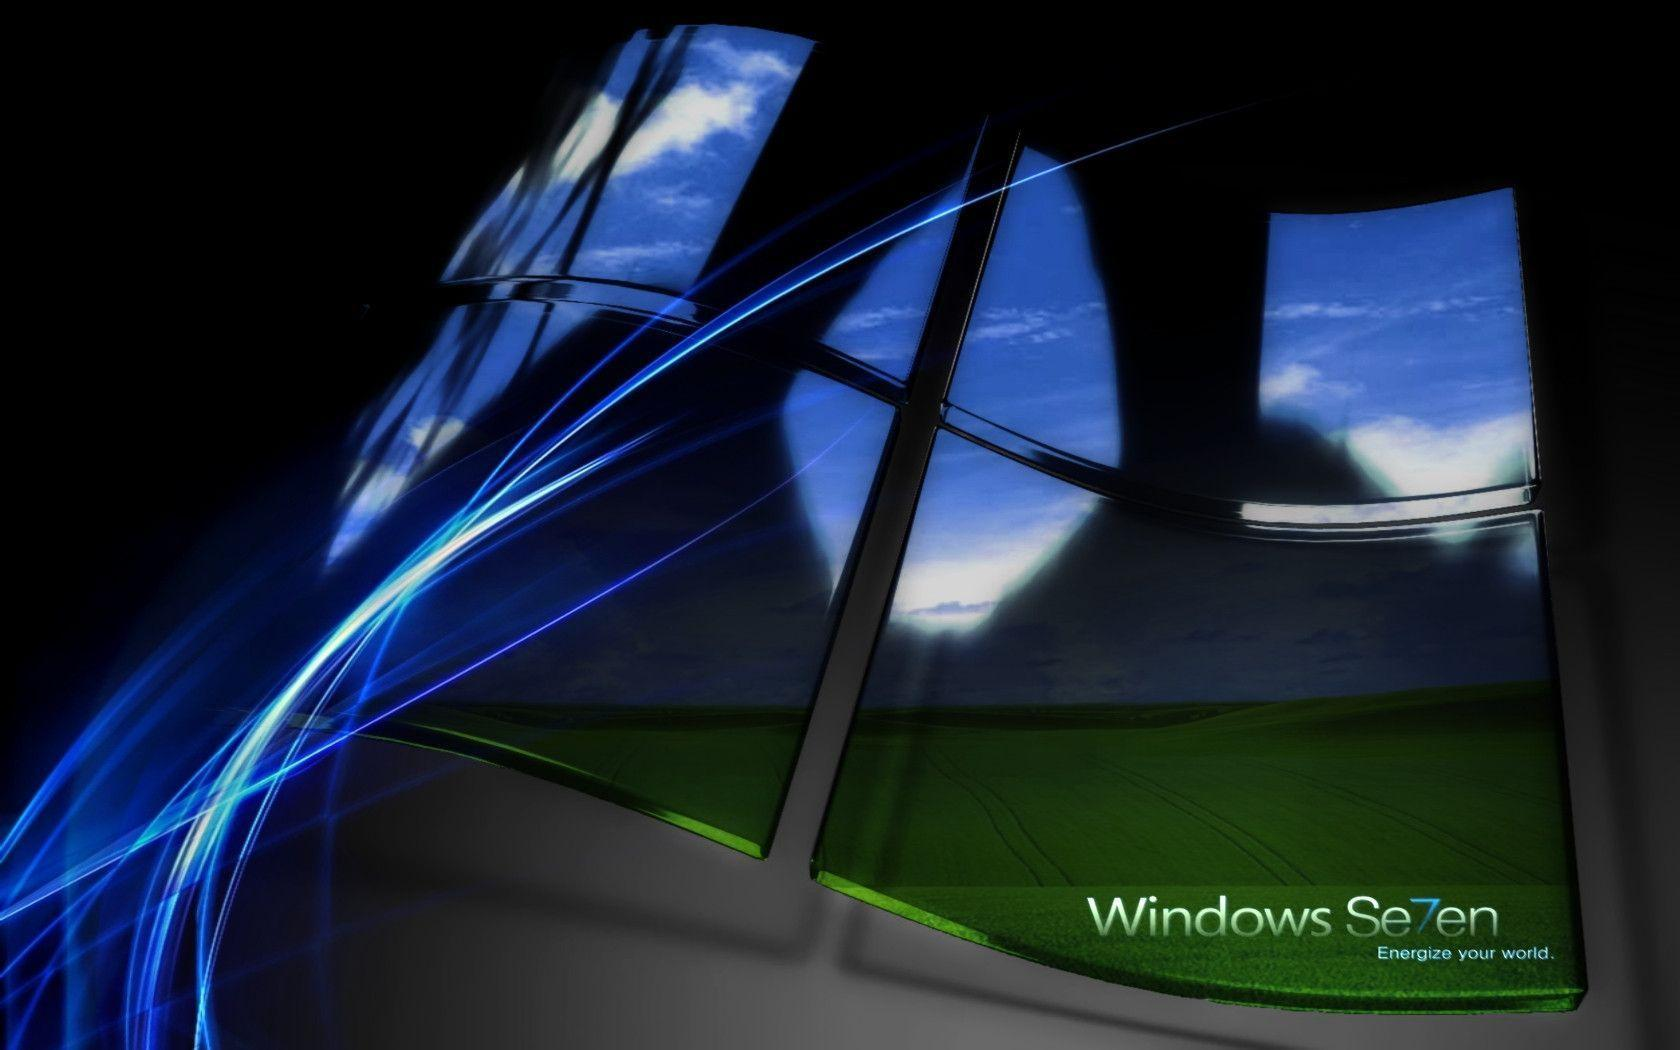 Love Wallpapers For Laptop Windows 7 : Windows 7 Ultimate Desktop Backgrounds - Wallpaper cave